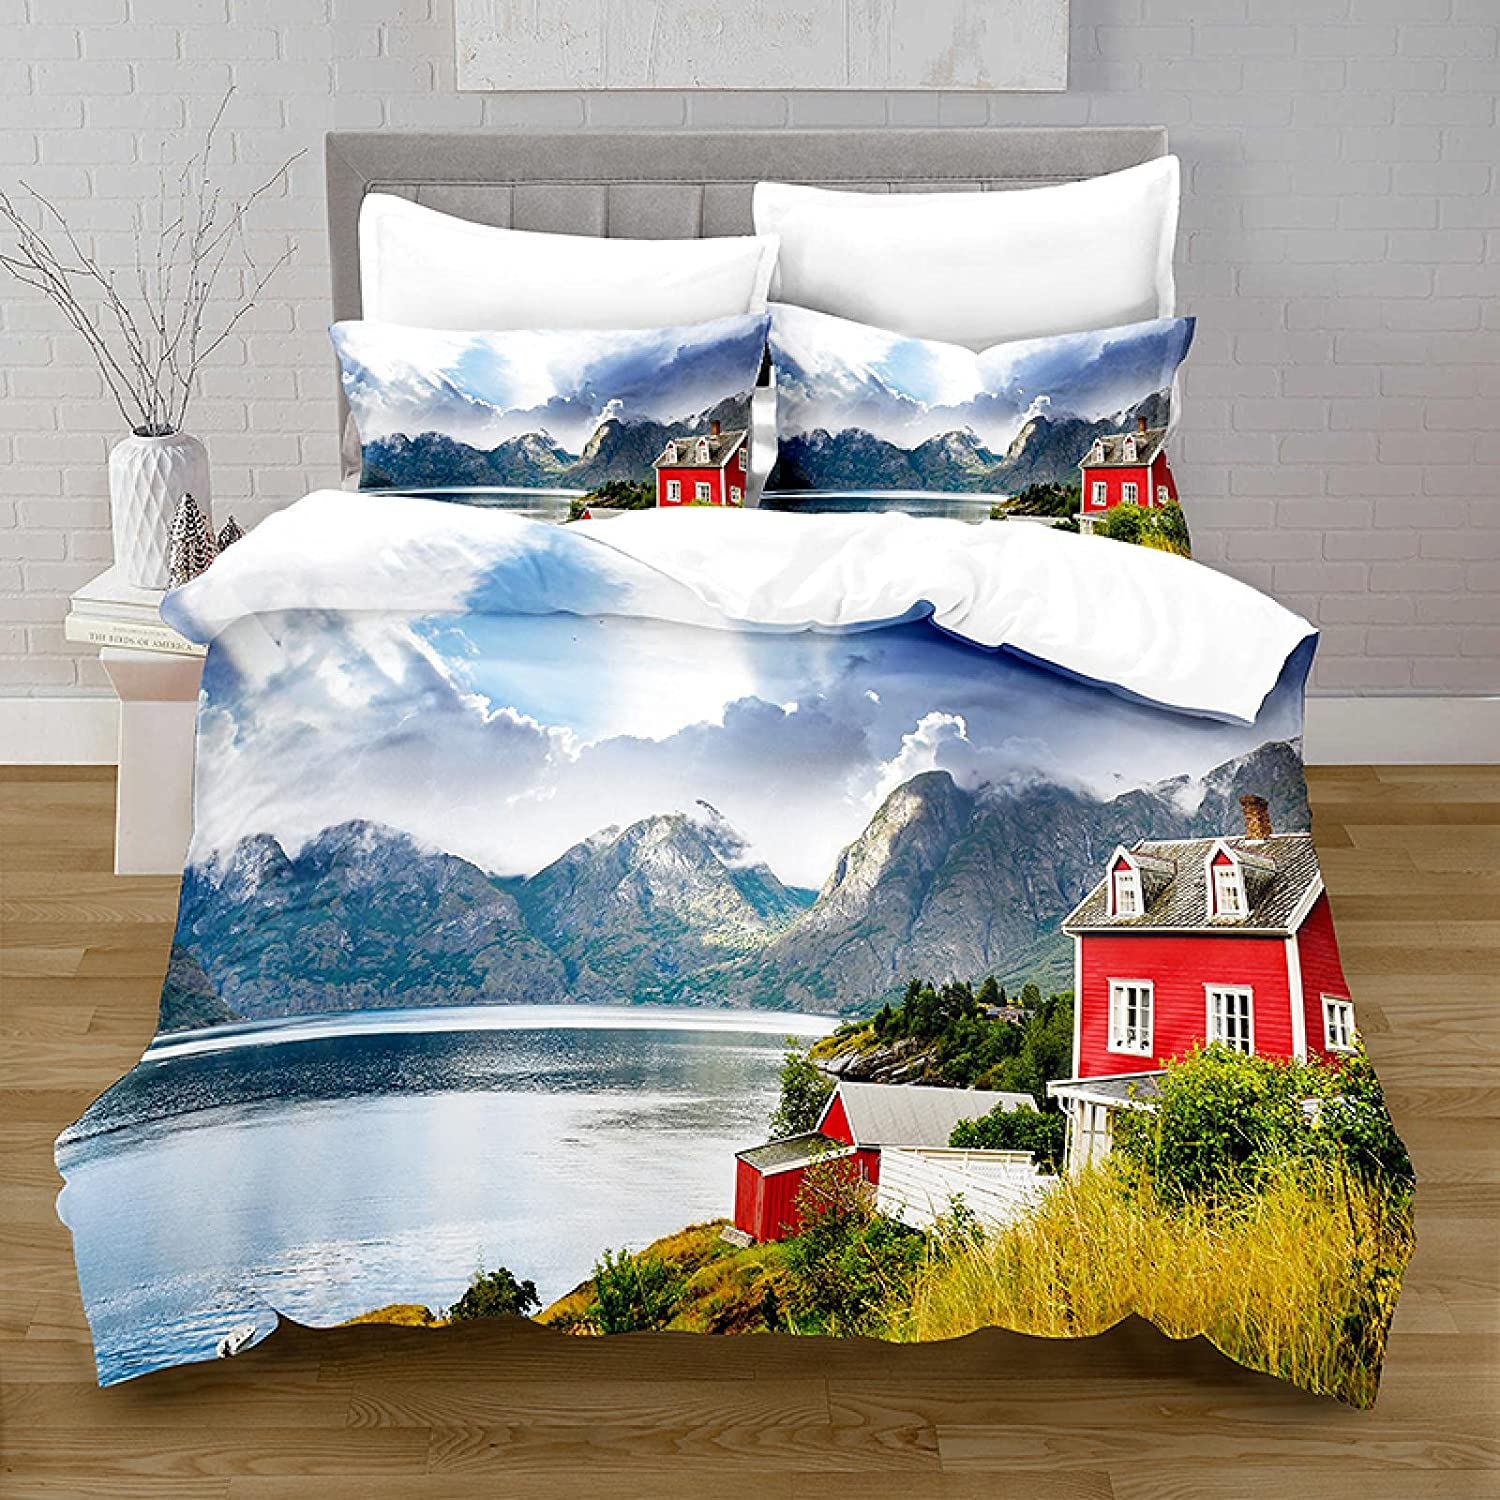 HQHM Duvet Cover Set 3 Limited time for free New product! New type shipping Piece 61X79 Lakes Trees Plants Mountains